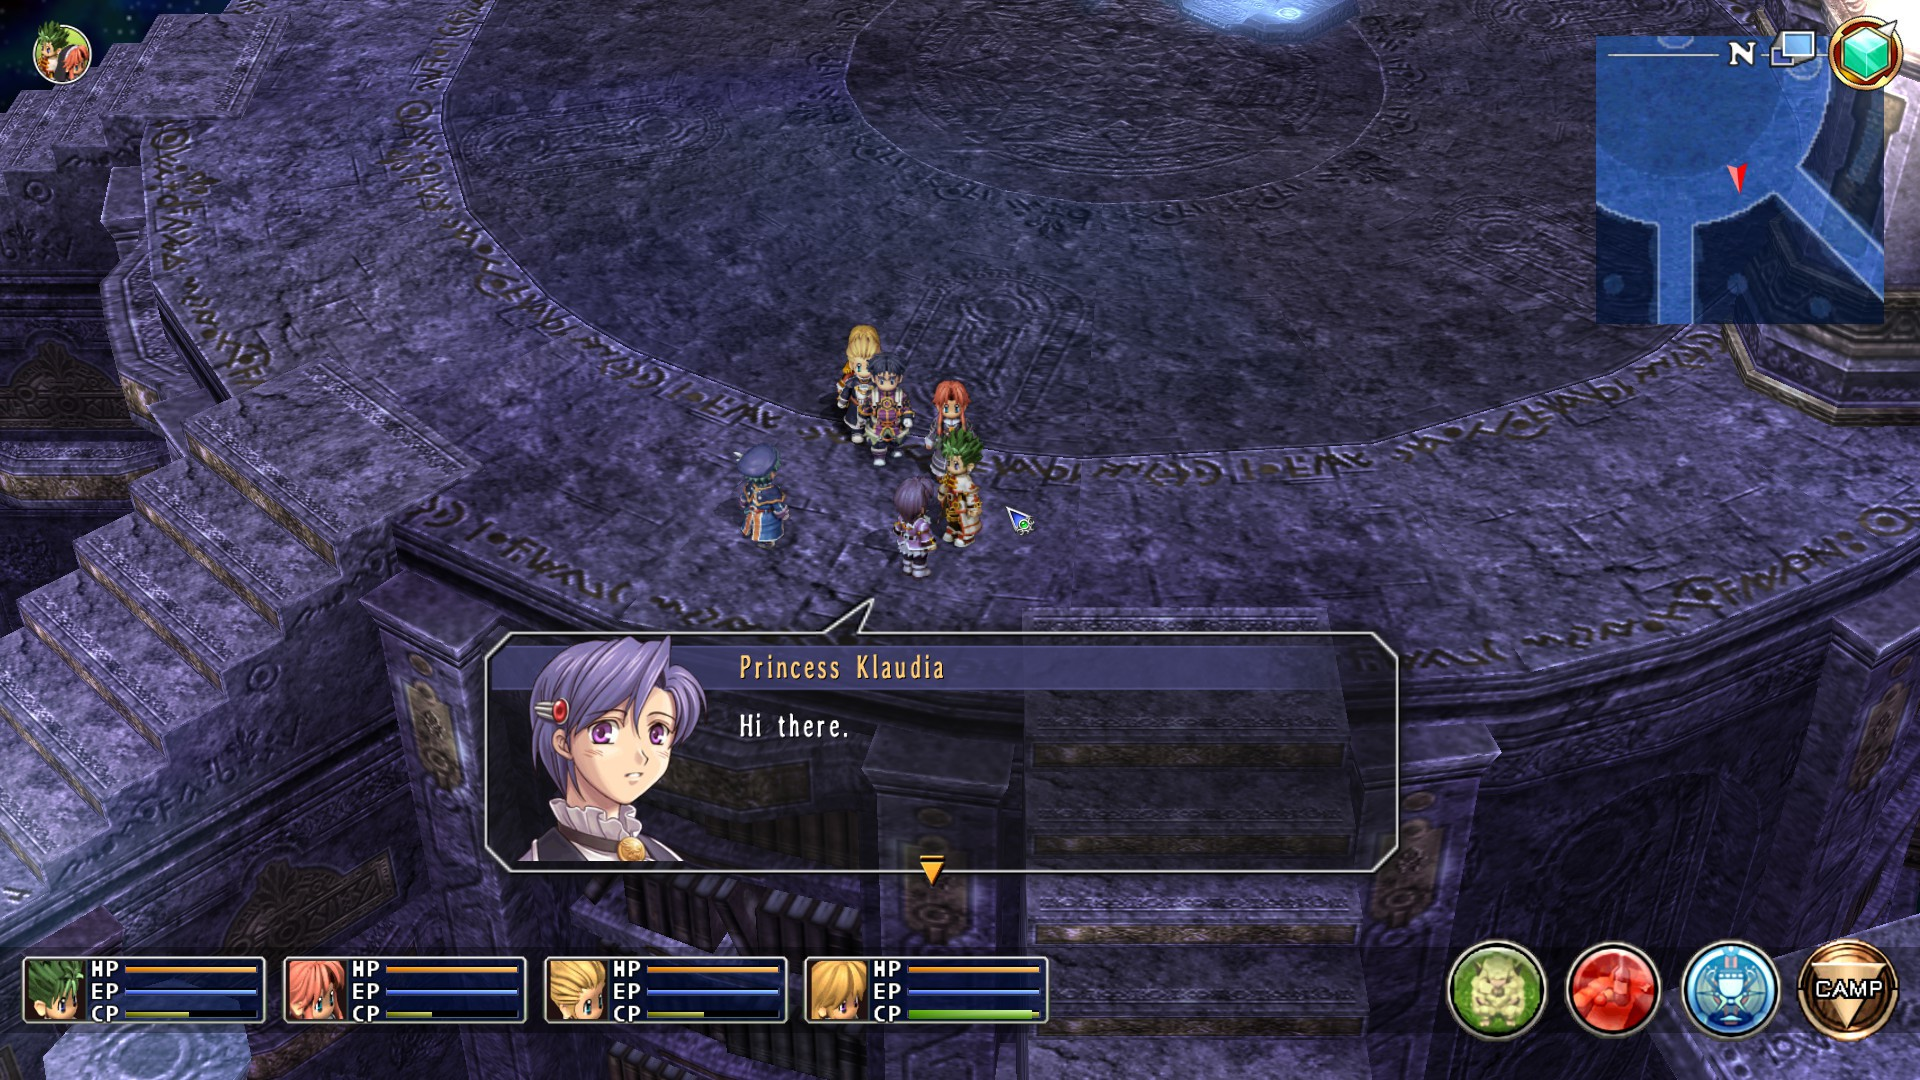 Скачать торрент игры The Legend of Heroes: Trails in the Sky the 3rd